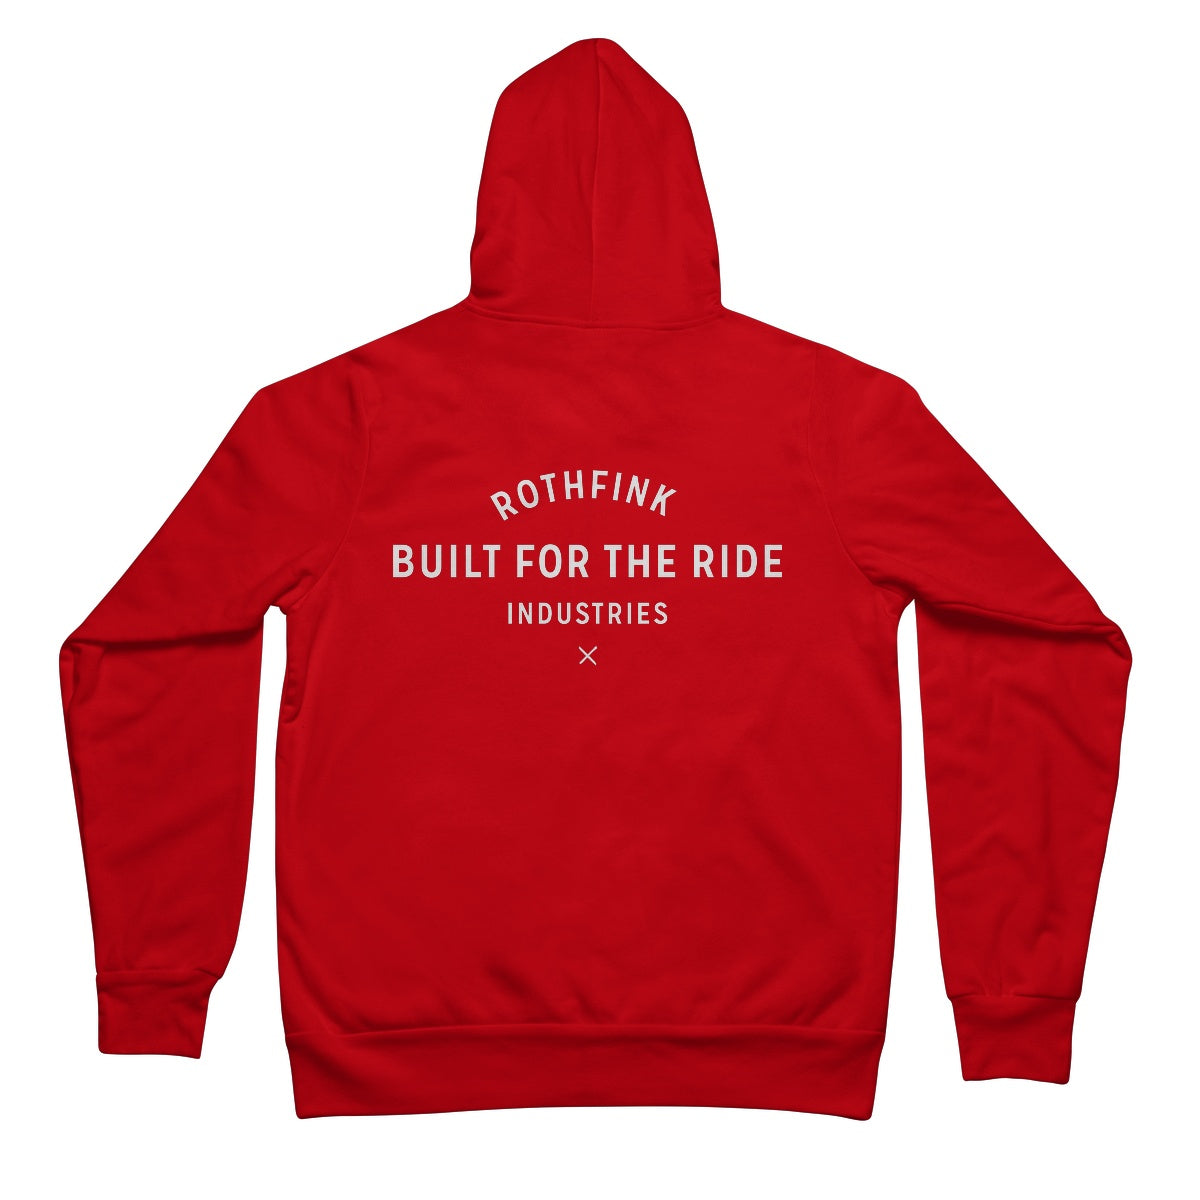 'Built for the ride' Full Zip Hoodie (front / back - unisex)